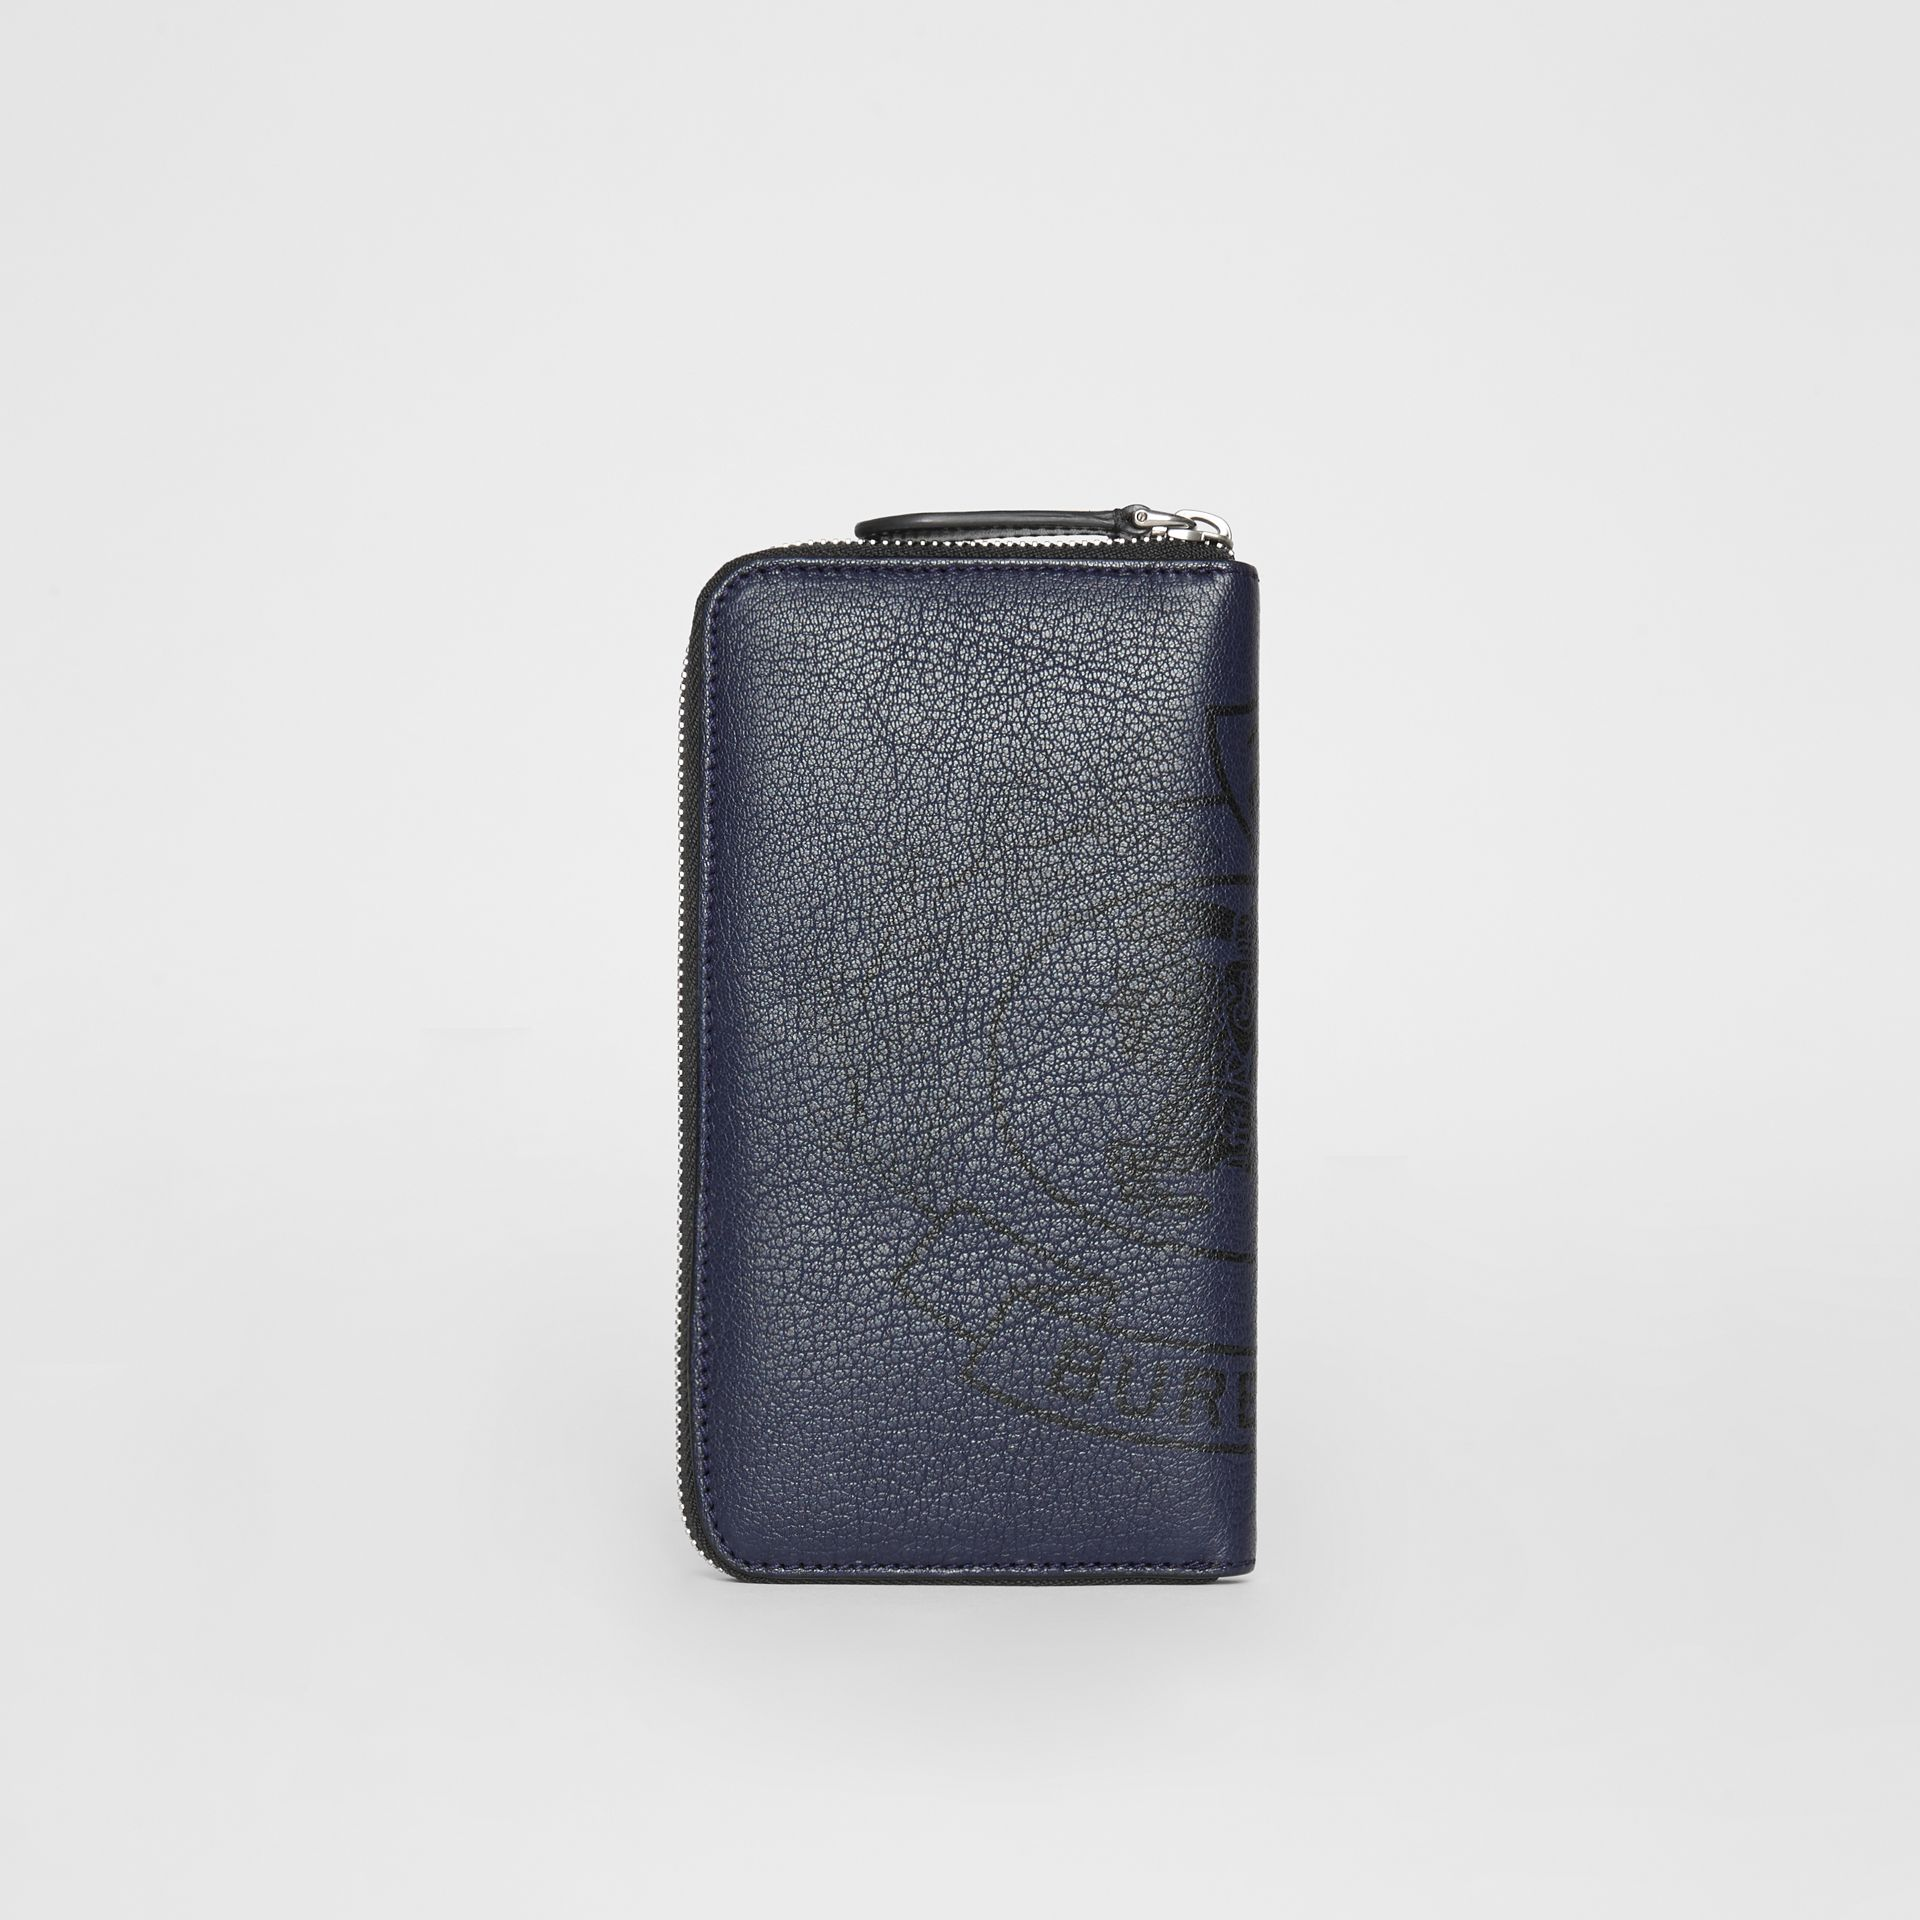 Crest Print Leather Ziparound Wallet in Storm Blue - Men | Burberry - gallery image 5